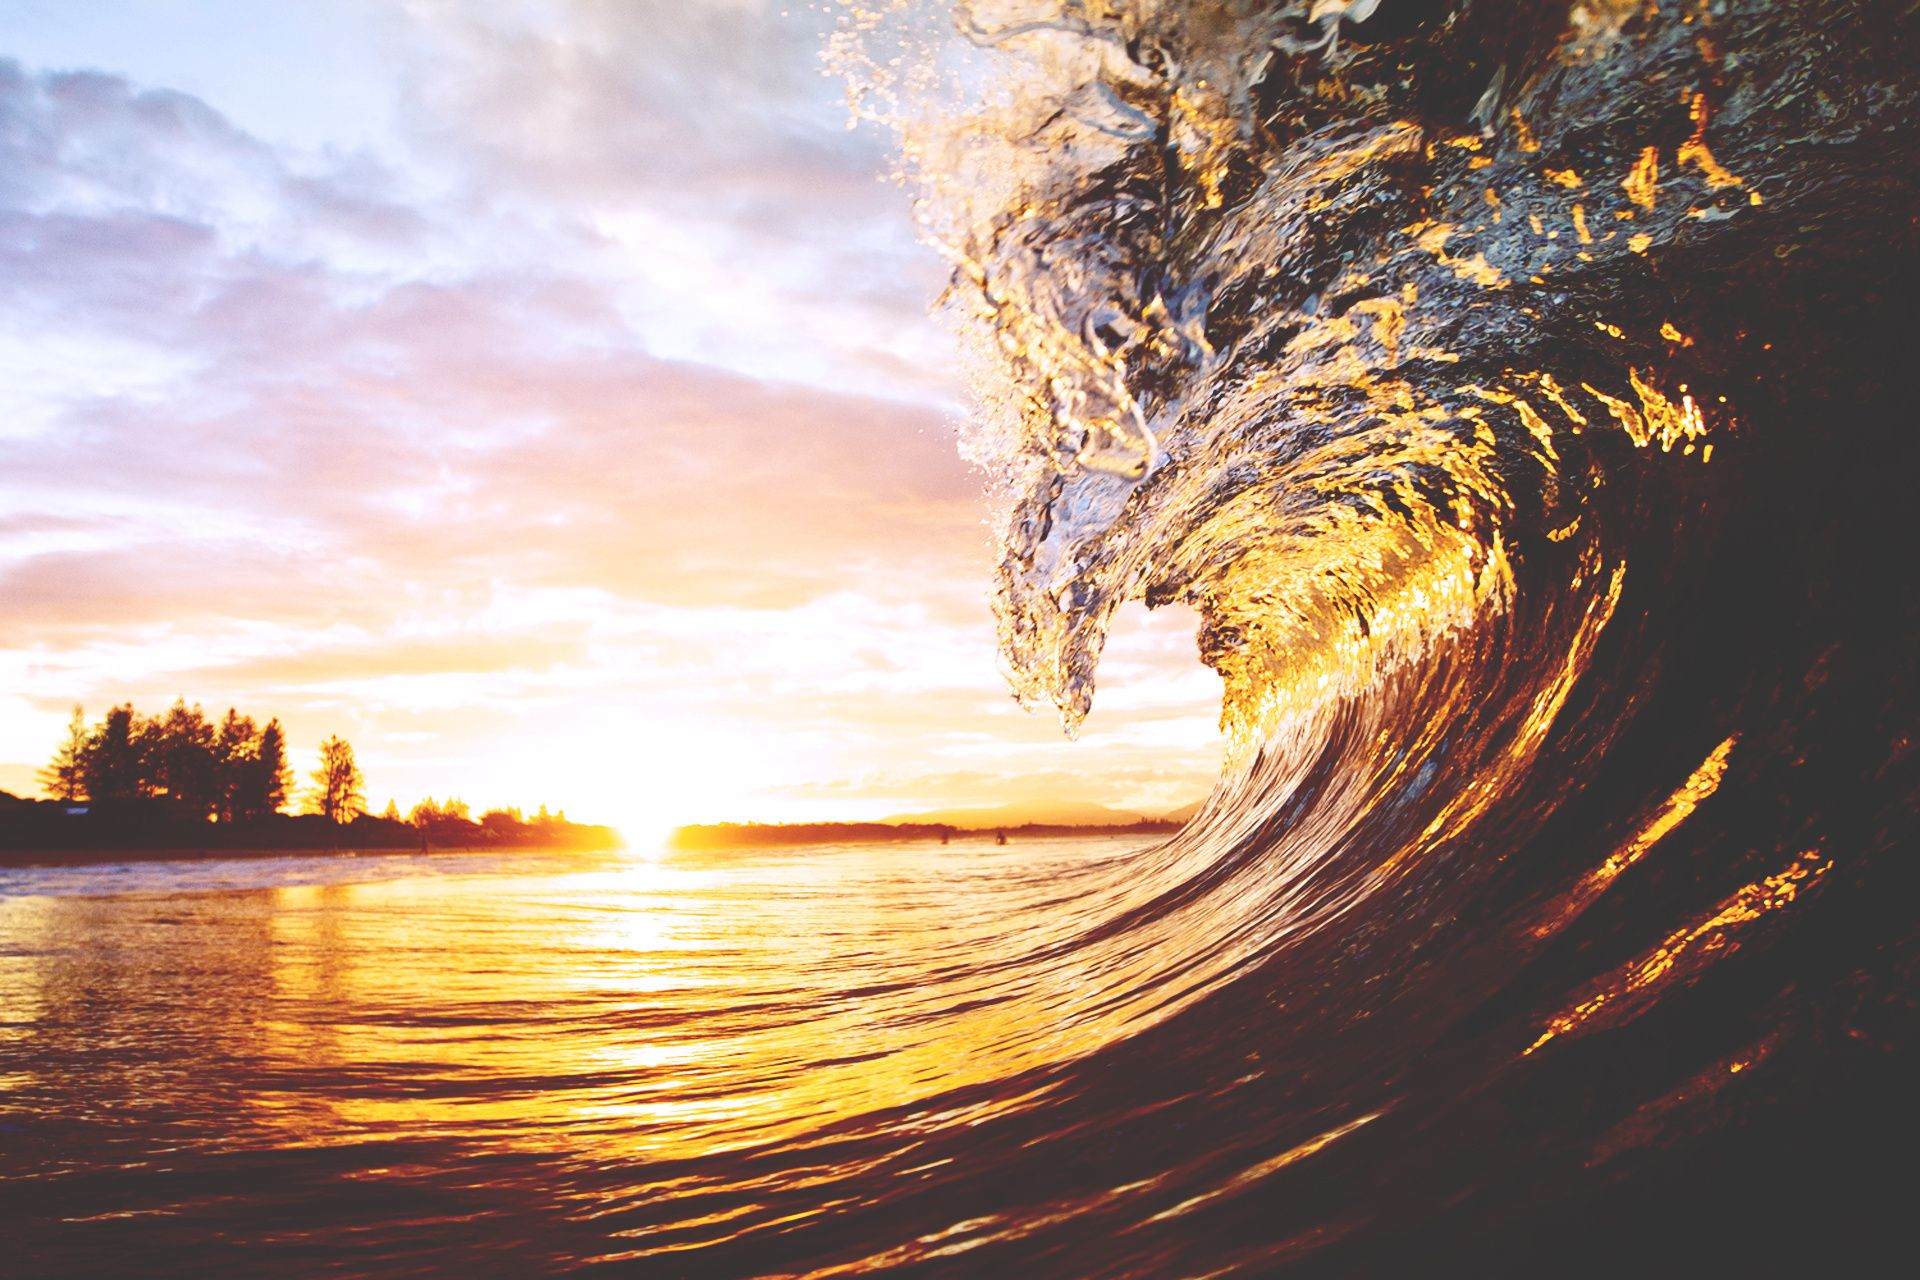 beach waves with beautiful wallpaper - photo #23